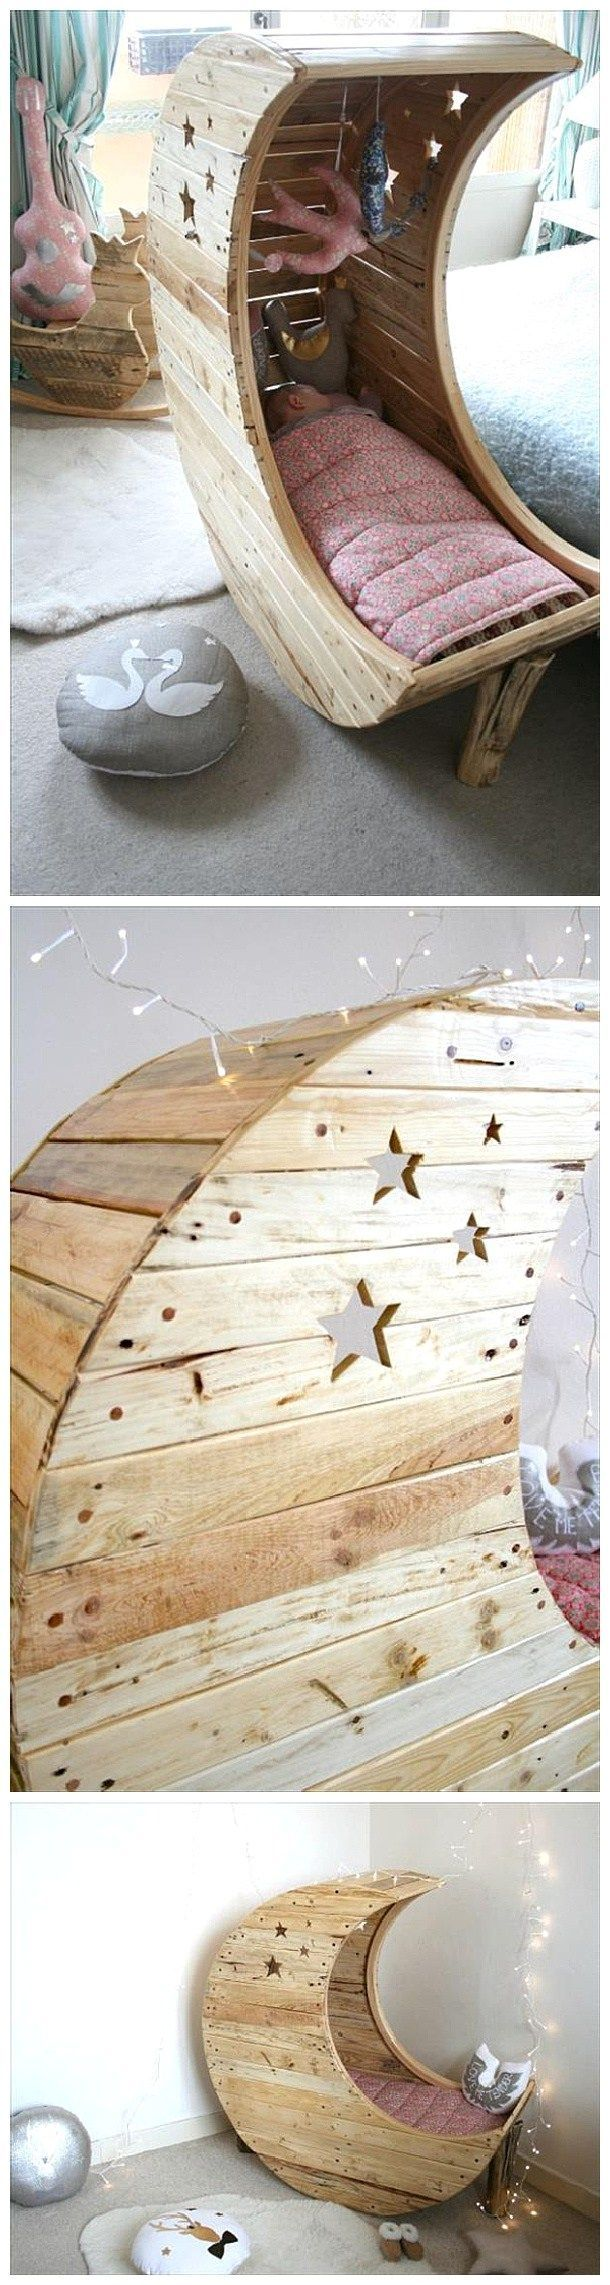 Do it Yourself Pallet Projects - DIY Pallet Moon Shaped Baby Cradle Woodworking Tutorial via 99 Pallets